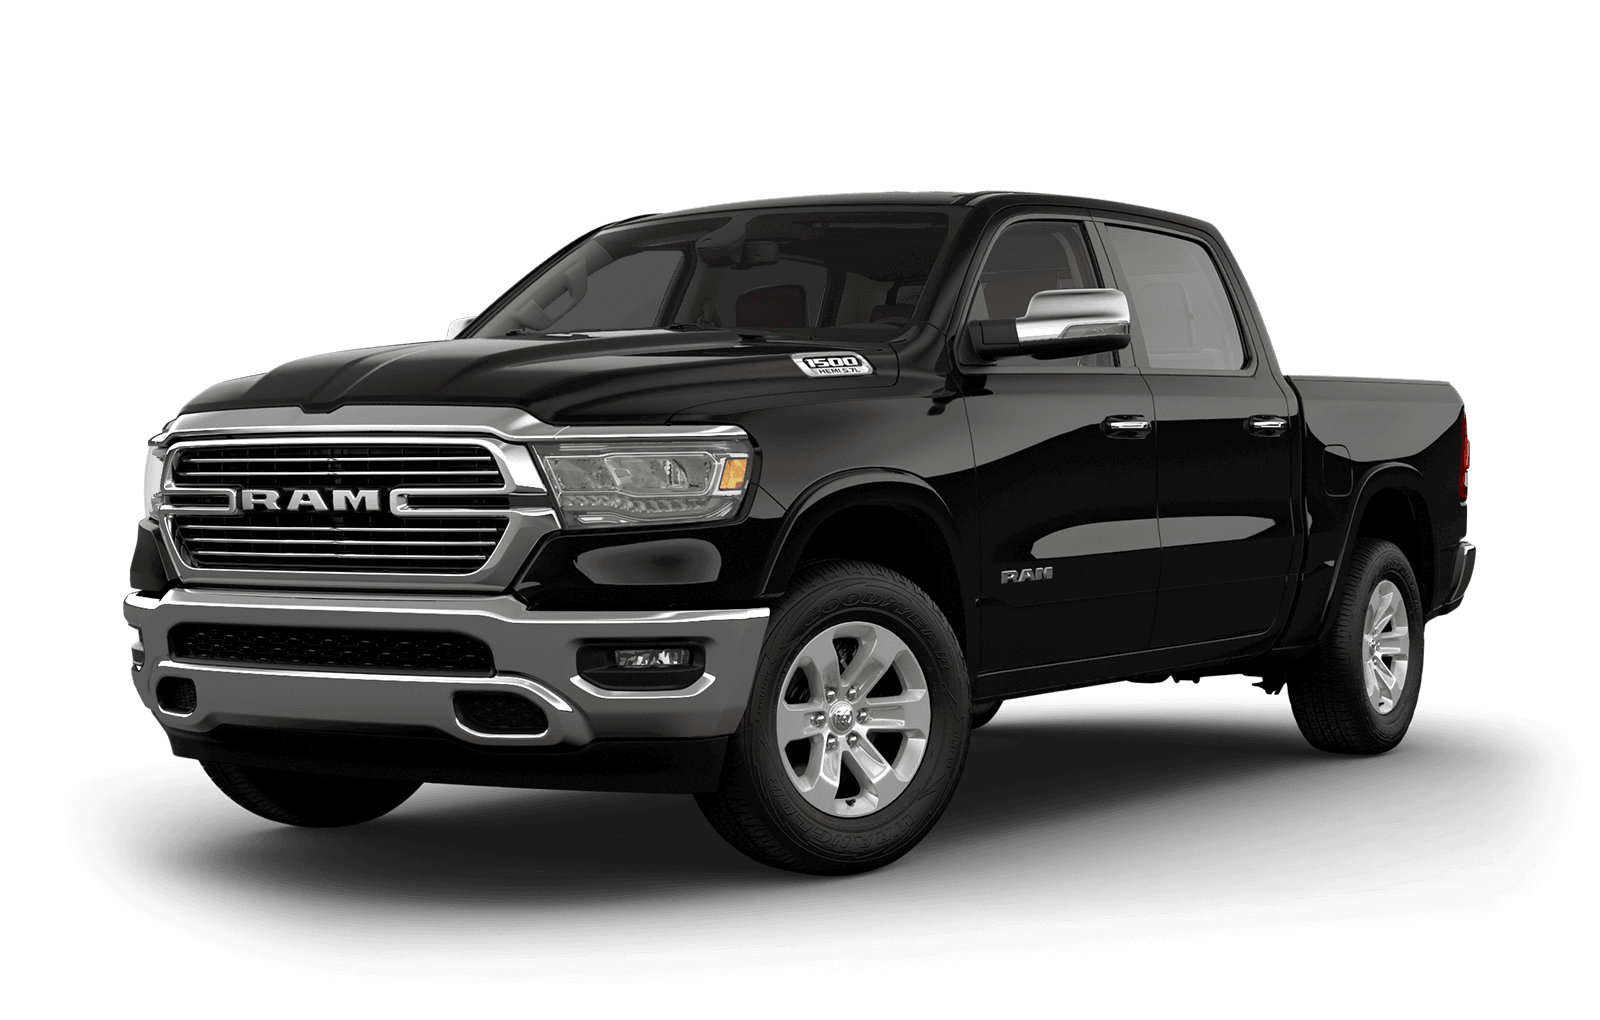 2020 Ram 1500 colour Diamond Black Crystal Pearl